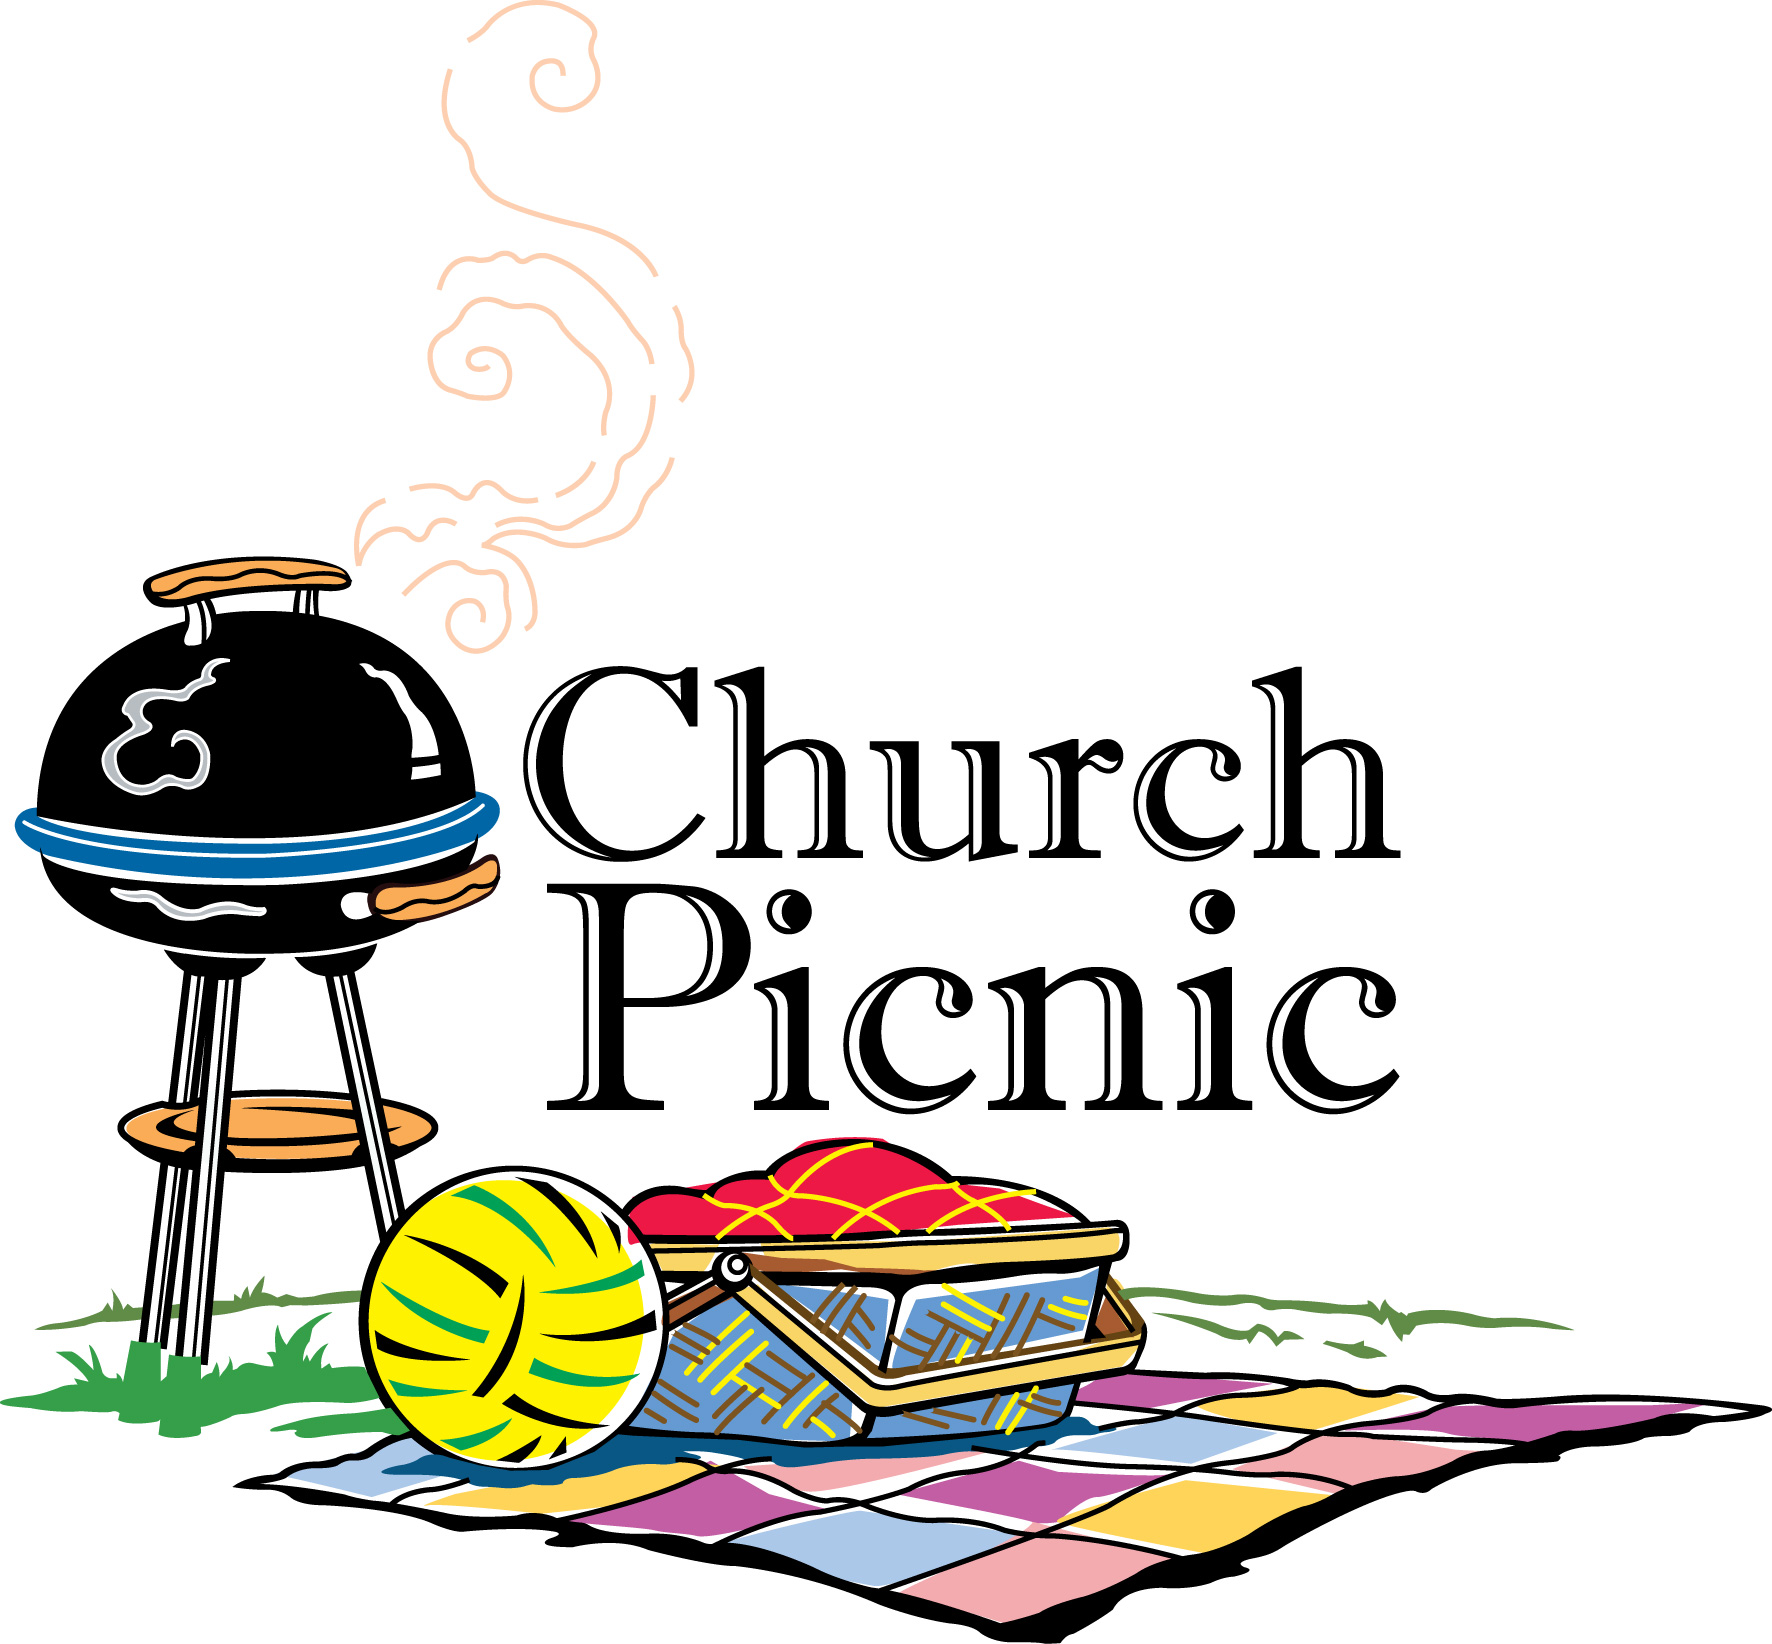 Bbq clipart church. Picnic free download best